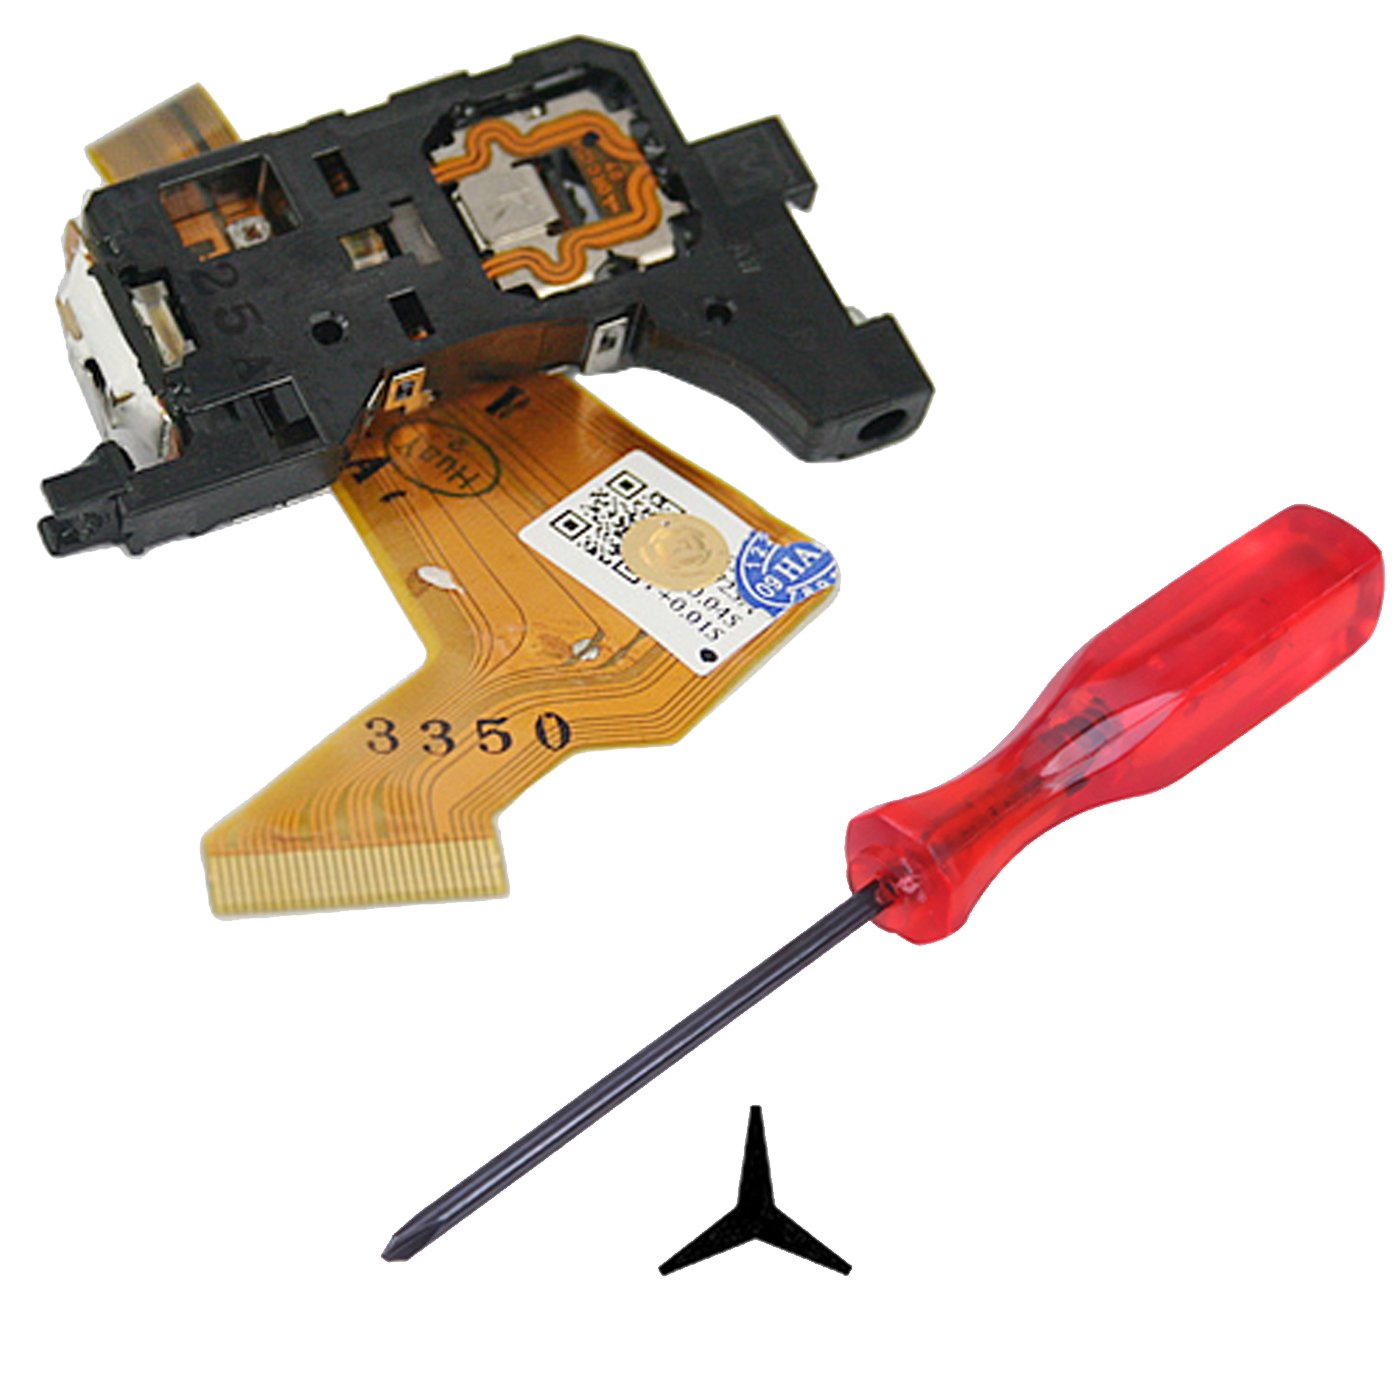 HDE Complete Disk Read Error Fix Kit for Nintendo Wii Gaming System - Replacement Laser Lens + Tri-Wing Y-Tip Screwdriver